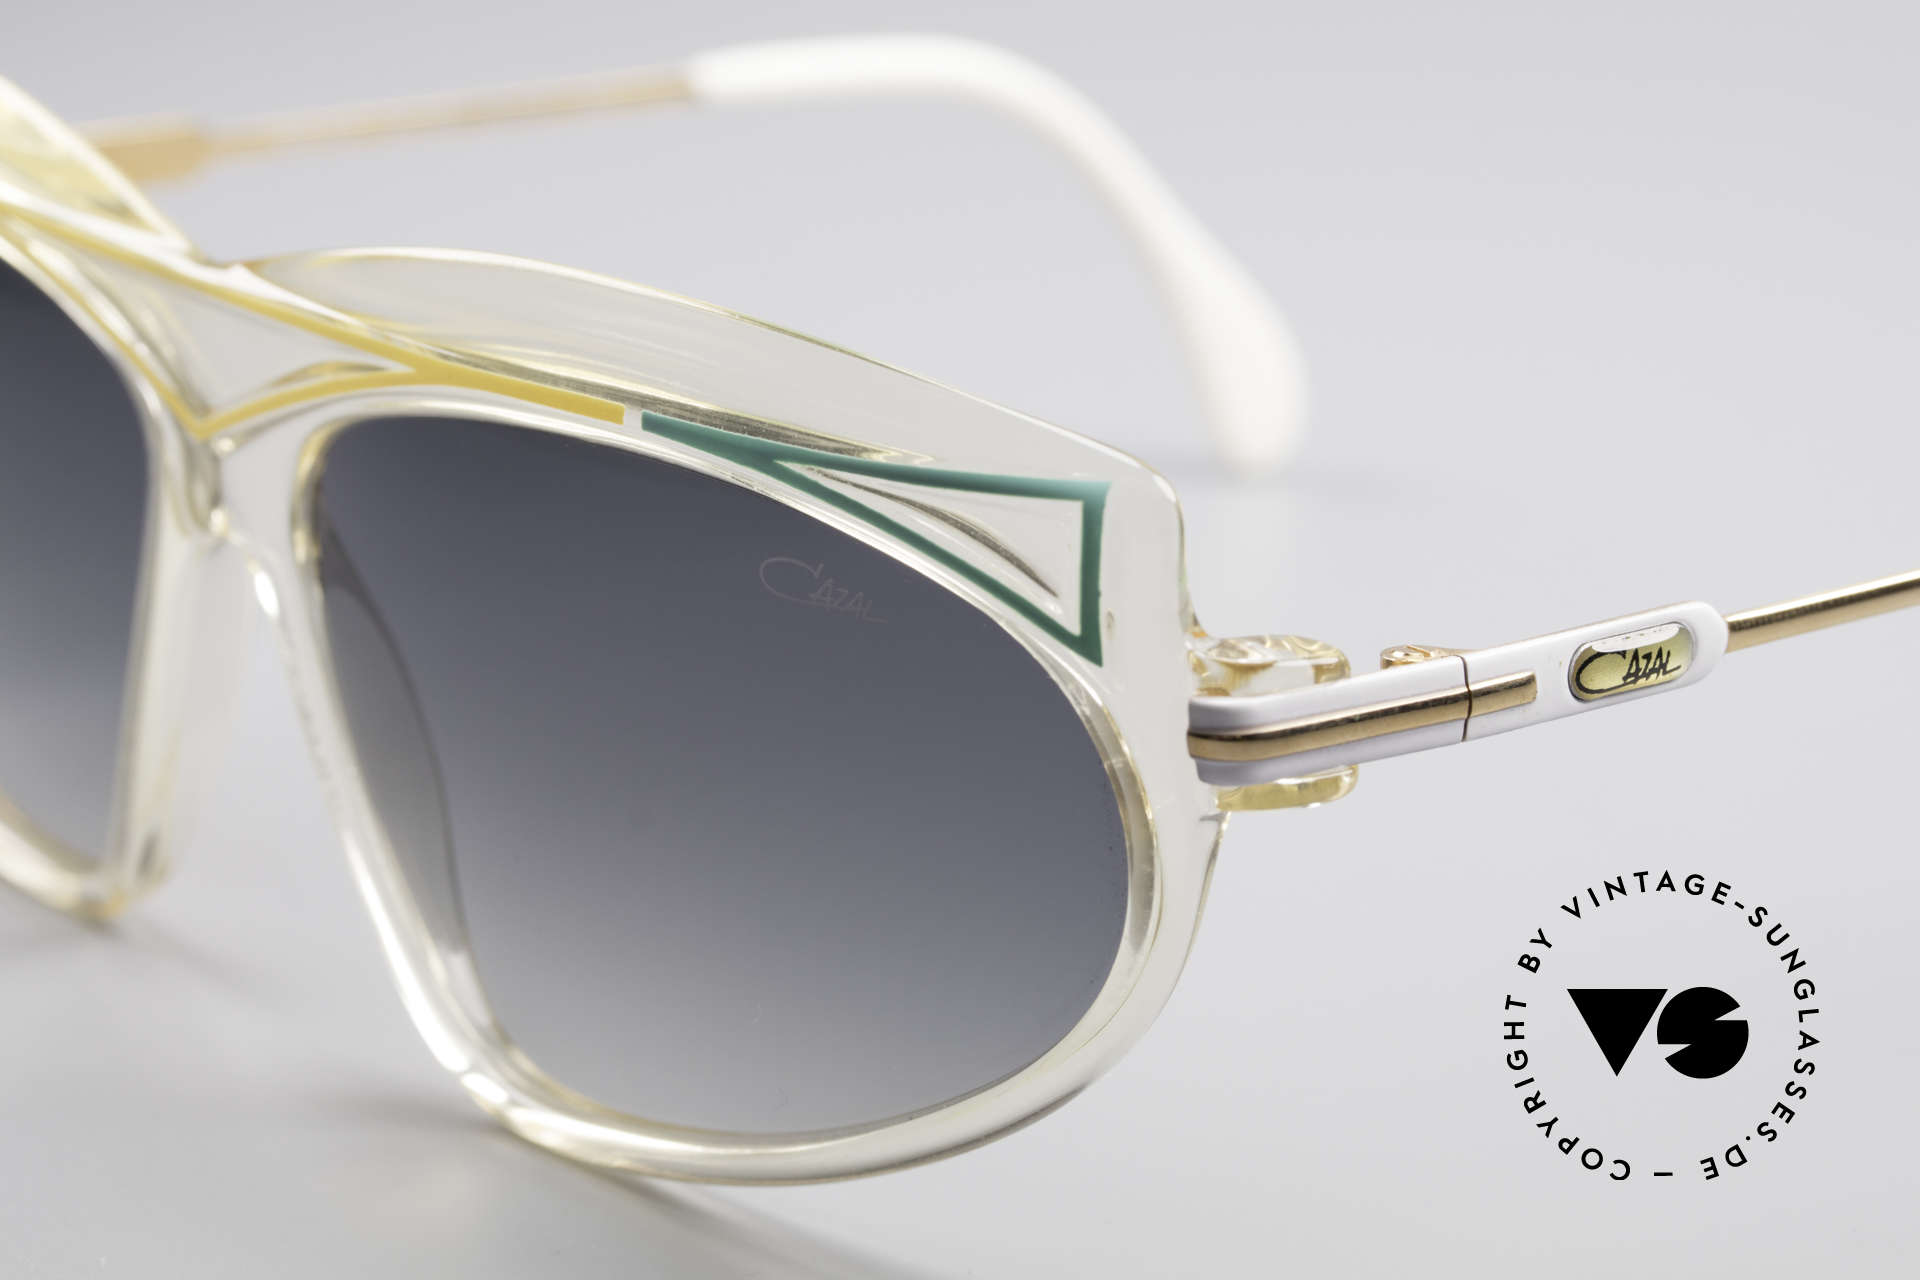 Cazal 854 XL True Vintage Hip Hop Shades, typical 80's frame coloring & design: true eye-catcher, Made for Women